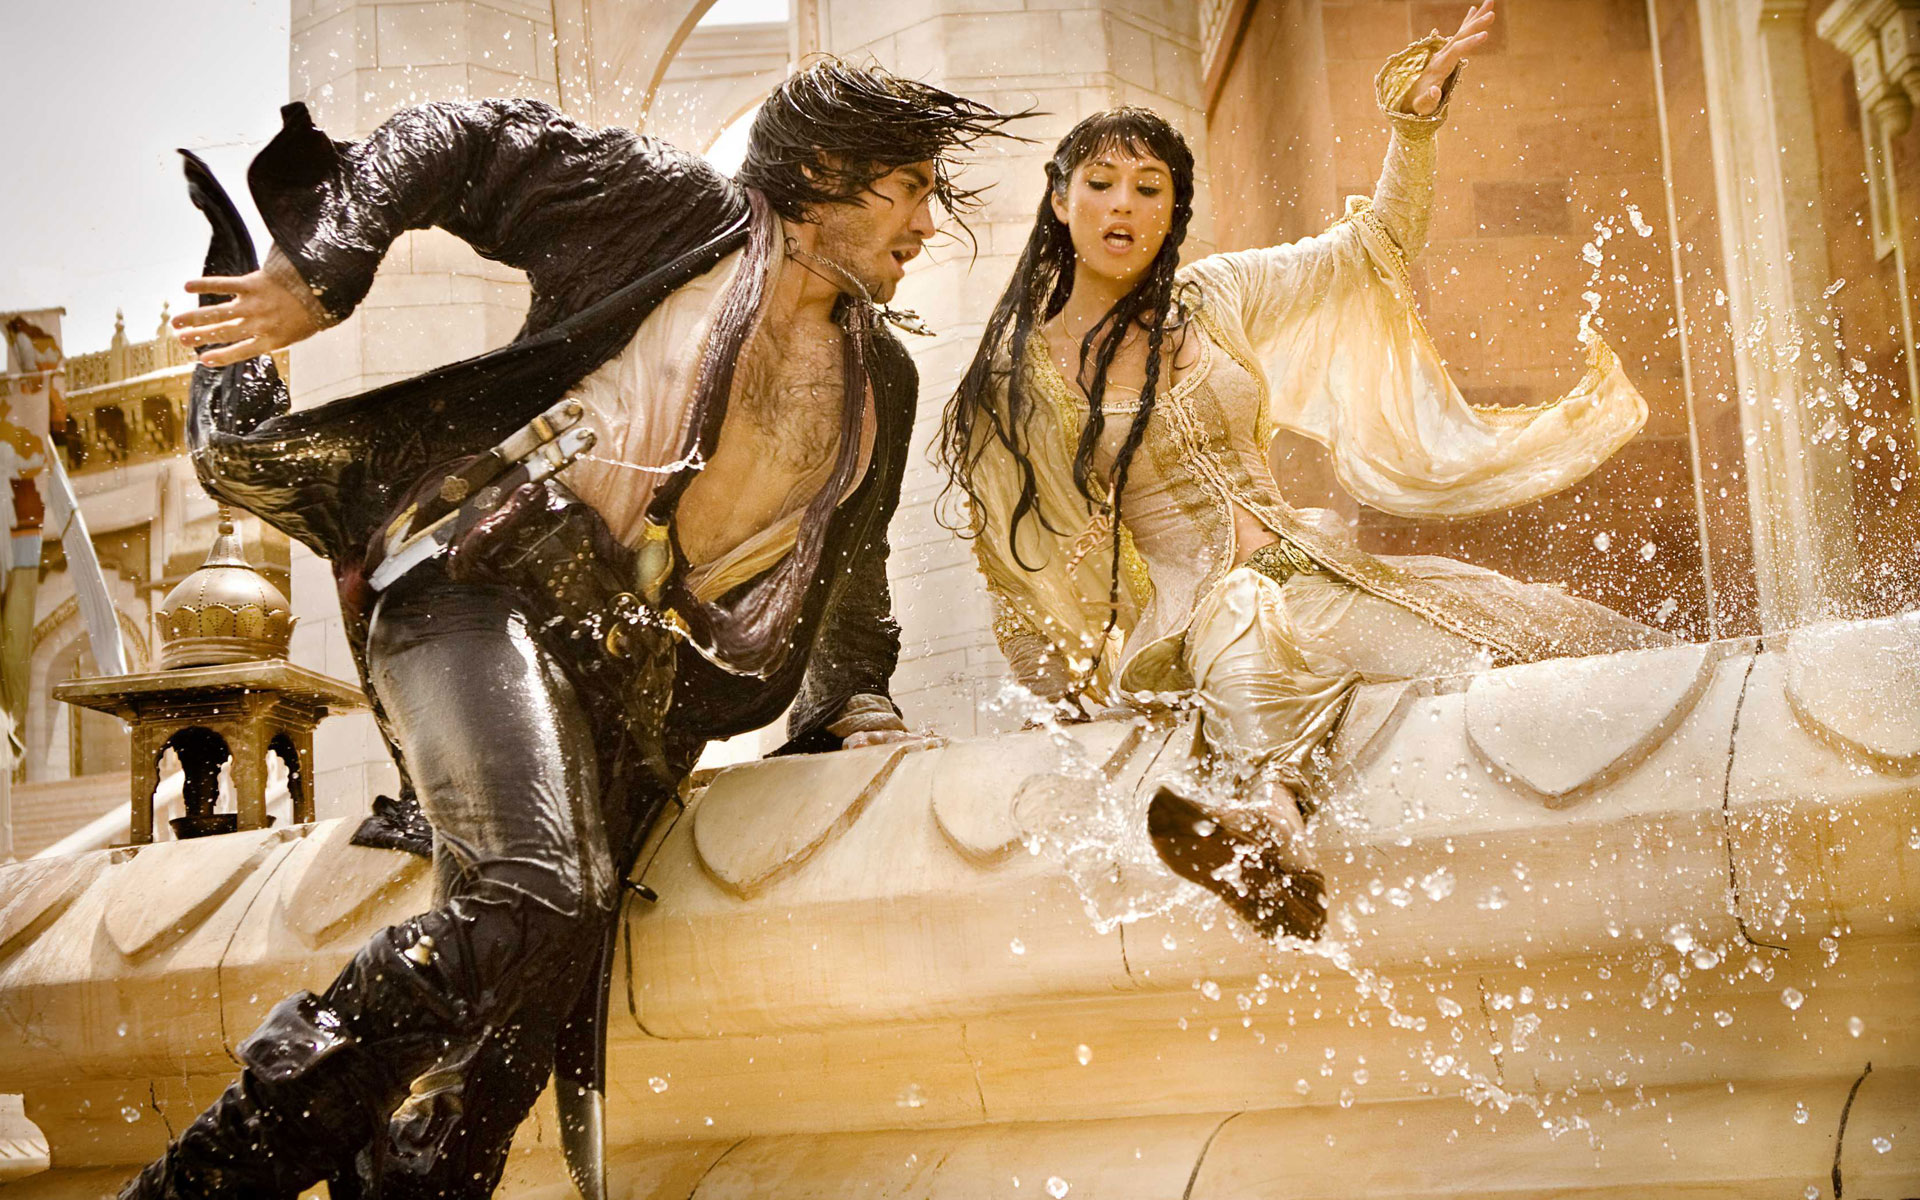 Prince Of Persia The Sands Of Time Movie Hd Wallpaper